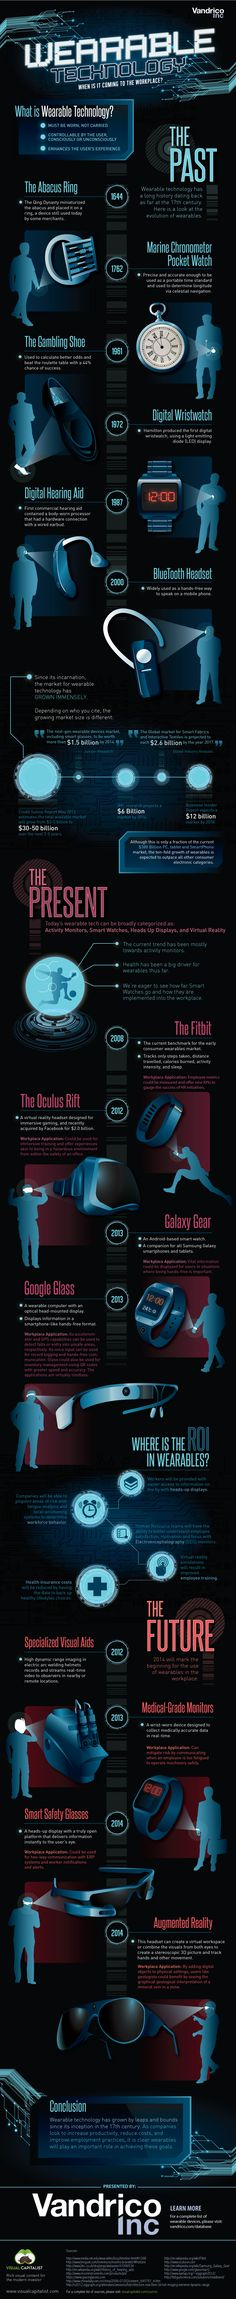 Wearable Technology Infographic   Vandrico Inc.Vandrico decided to make a visually stimulating and educational Infographic to help you see the past, present and future of this market....